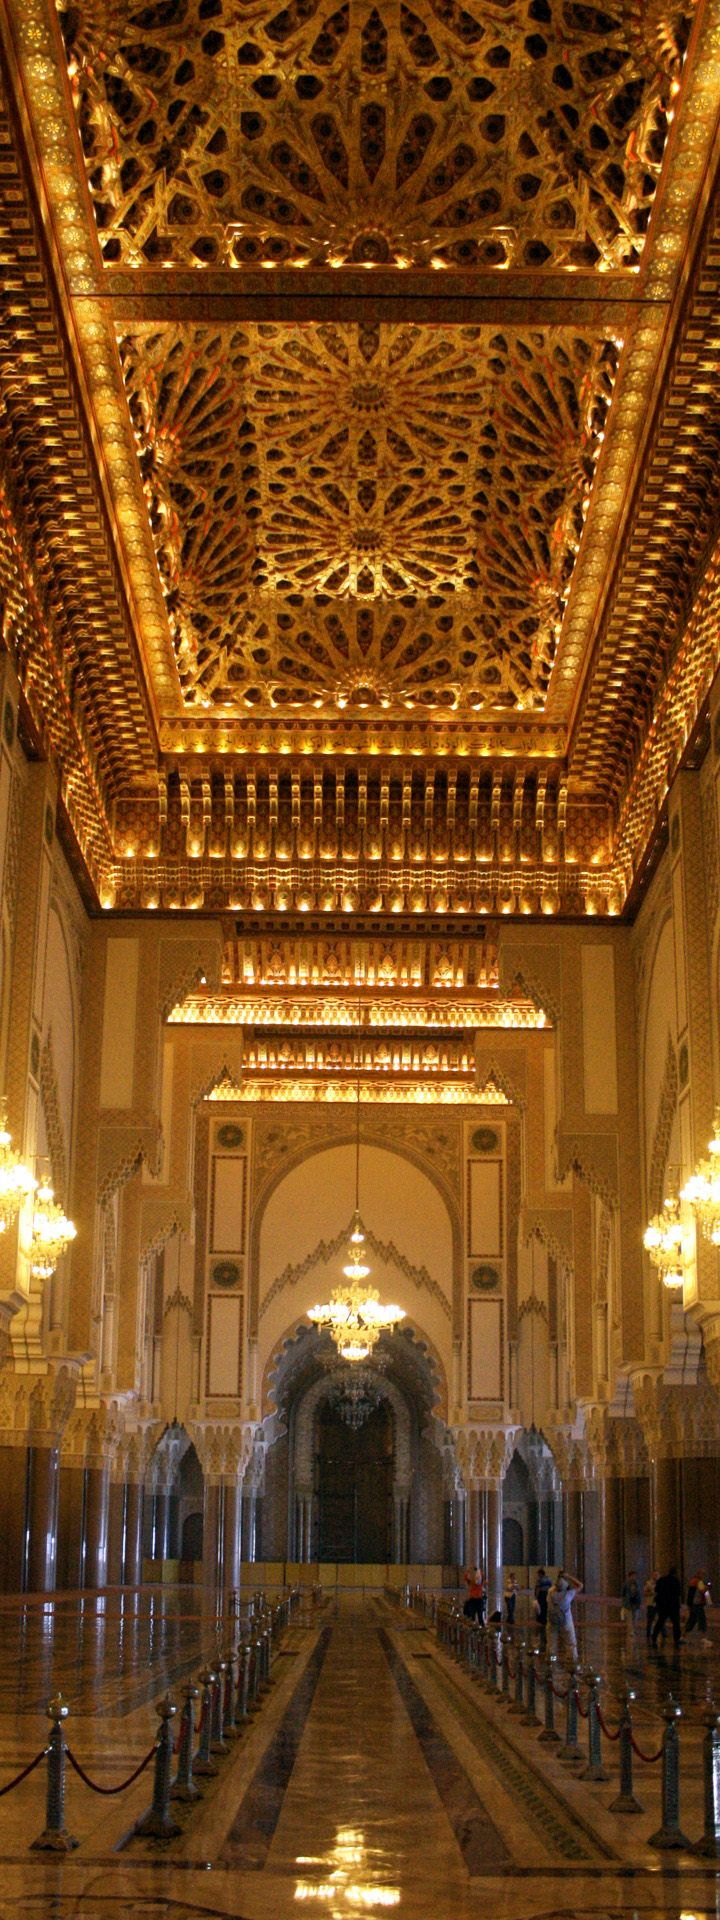 Non Muslim Perspective On The Revolution Of Imam Hussain: Casablanca, Mosquée Hassan II - Morocco